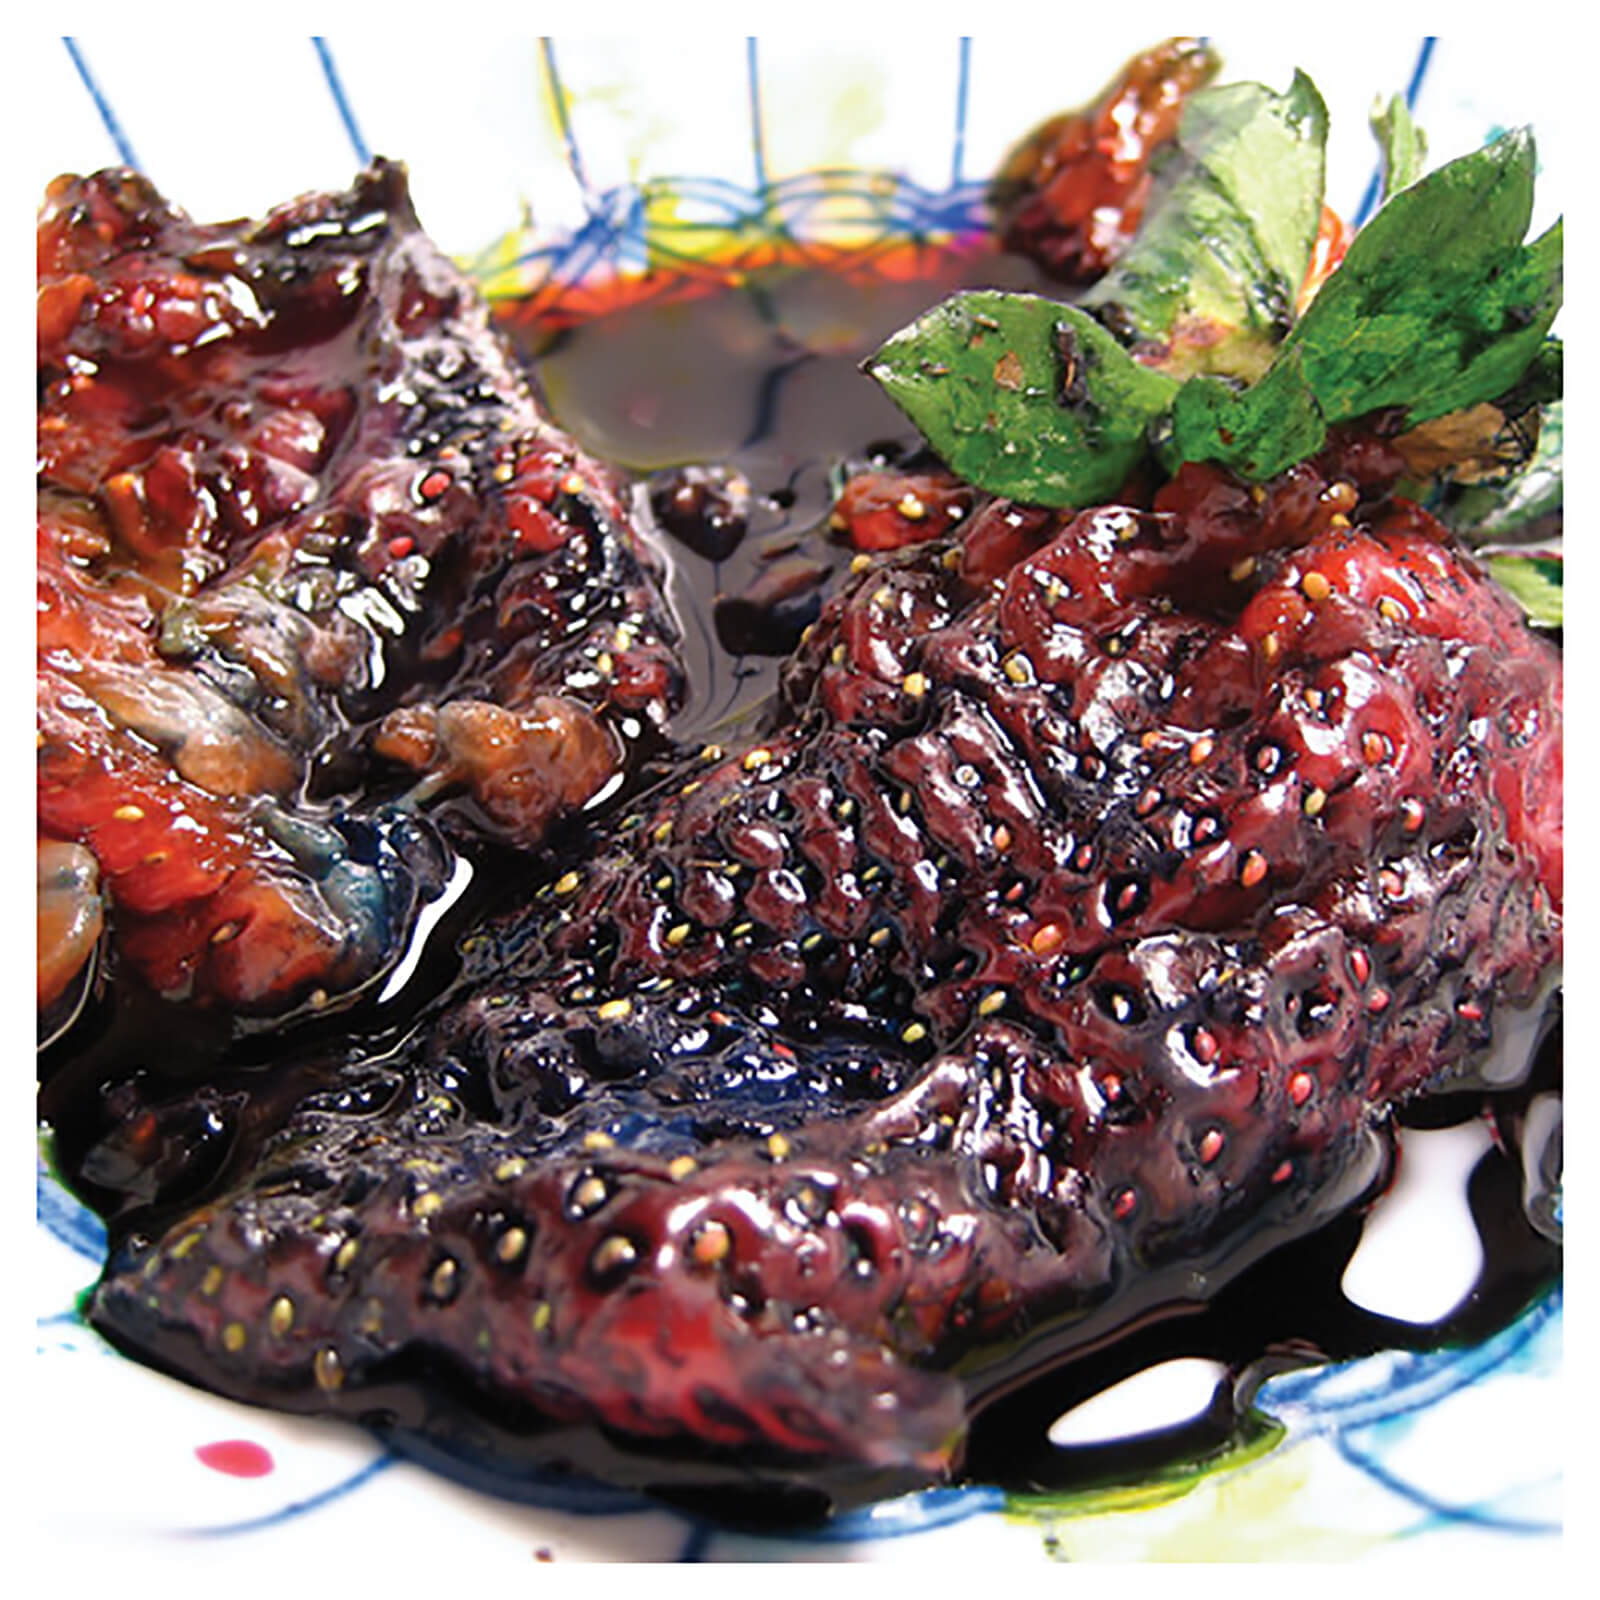 Animal Collective - Strawberry Jam - Vinyl